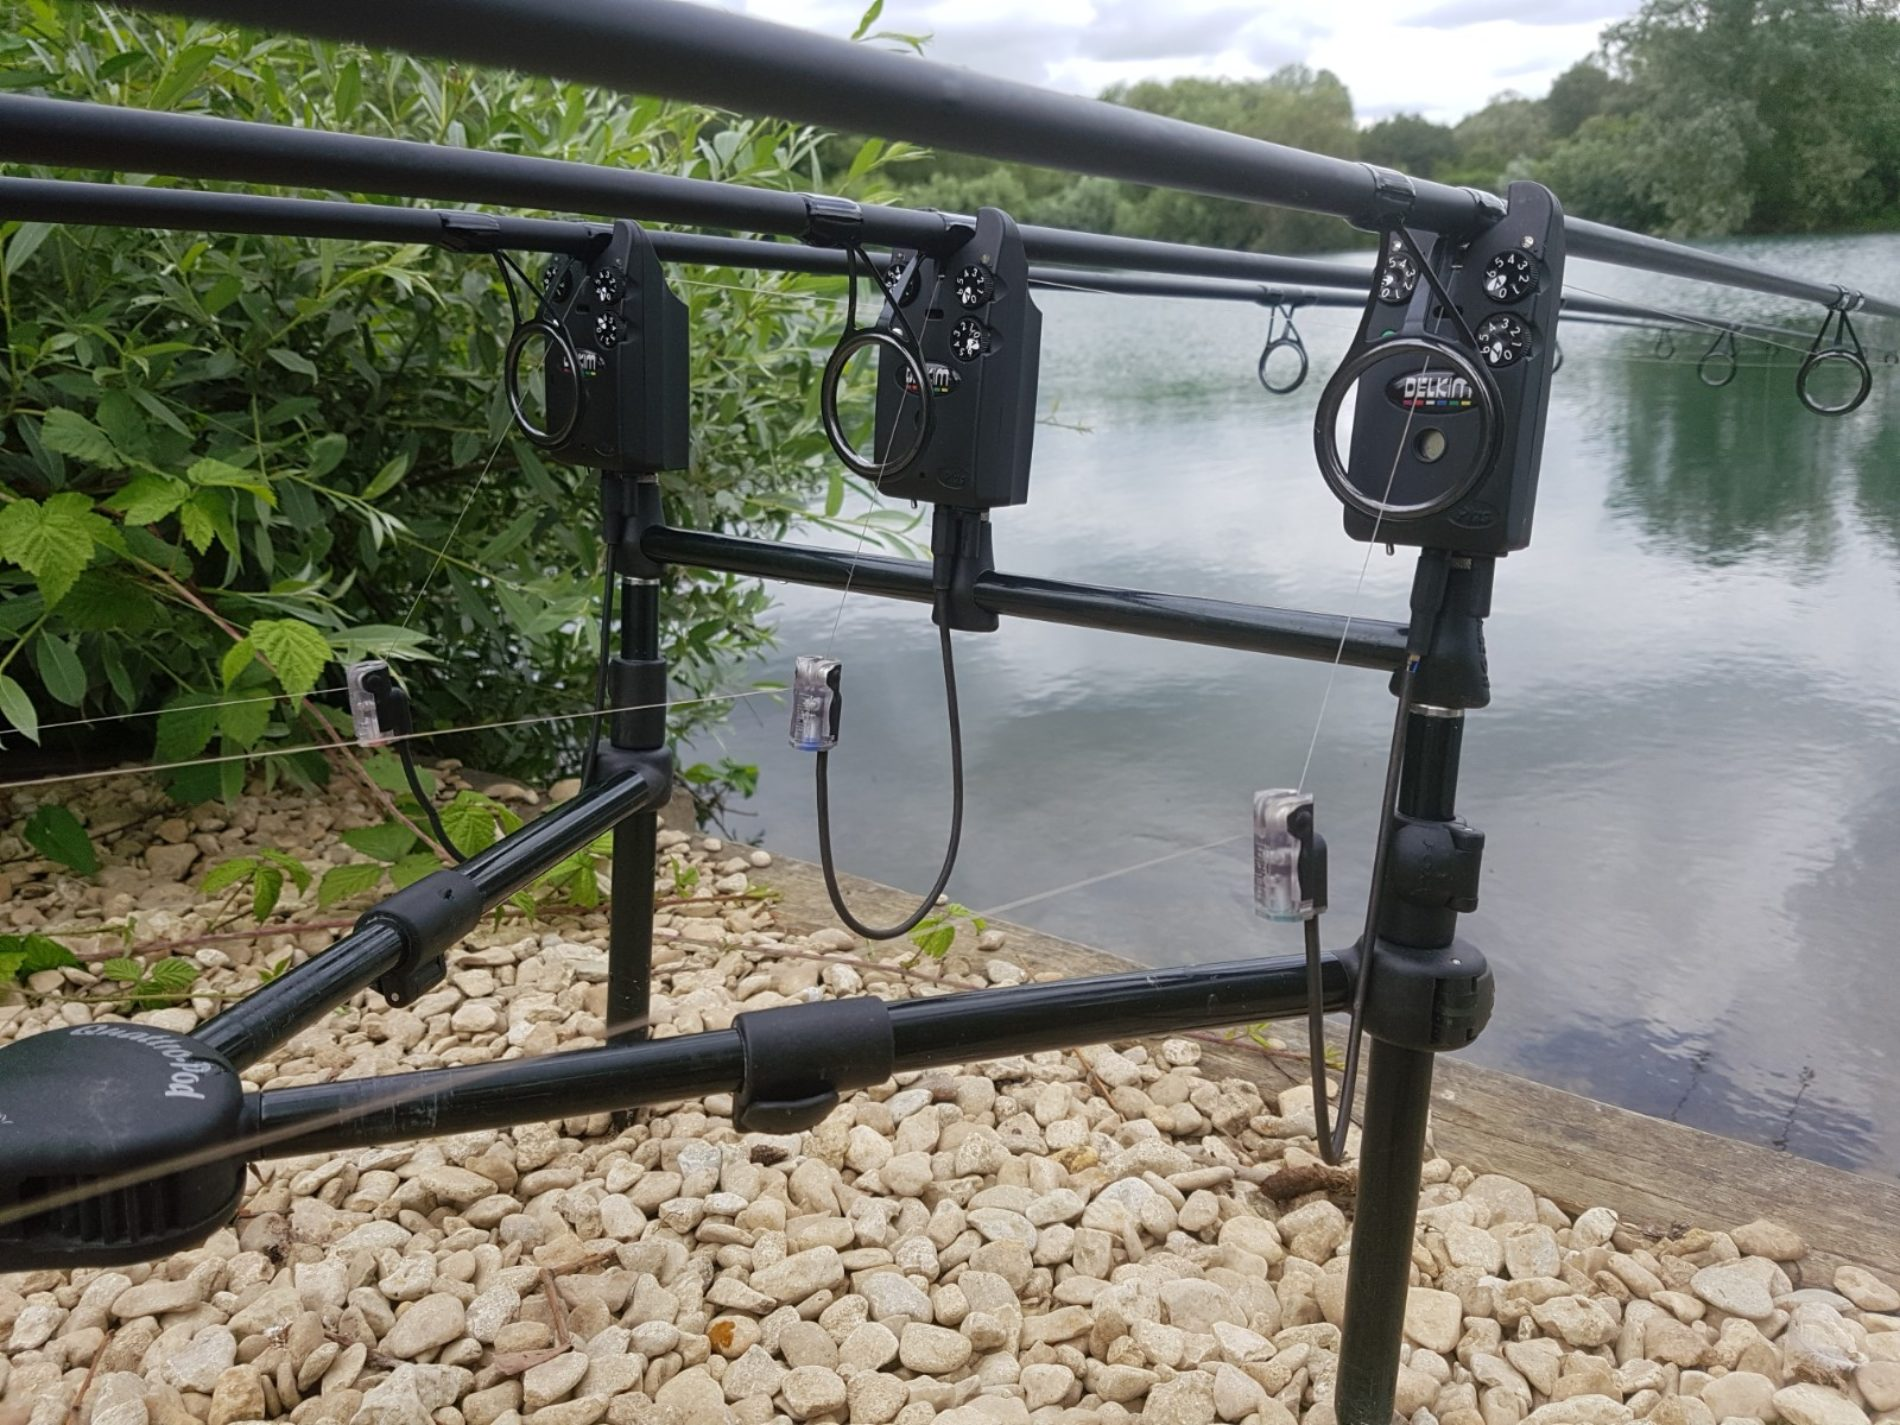 How to Fish For Carp in Weed